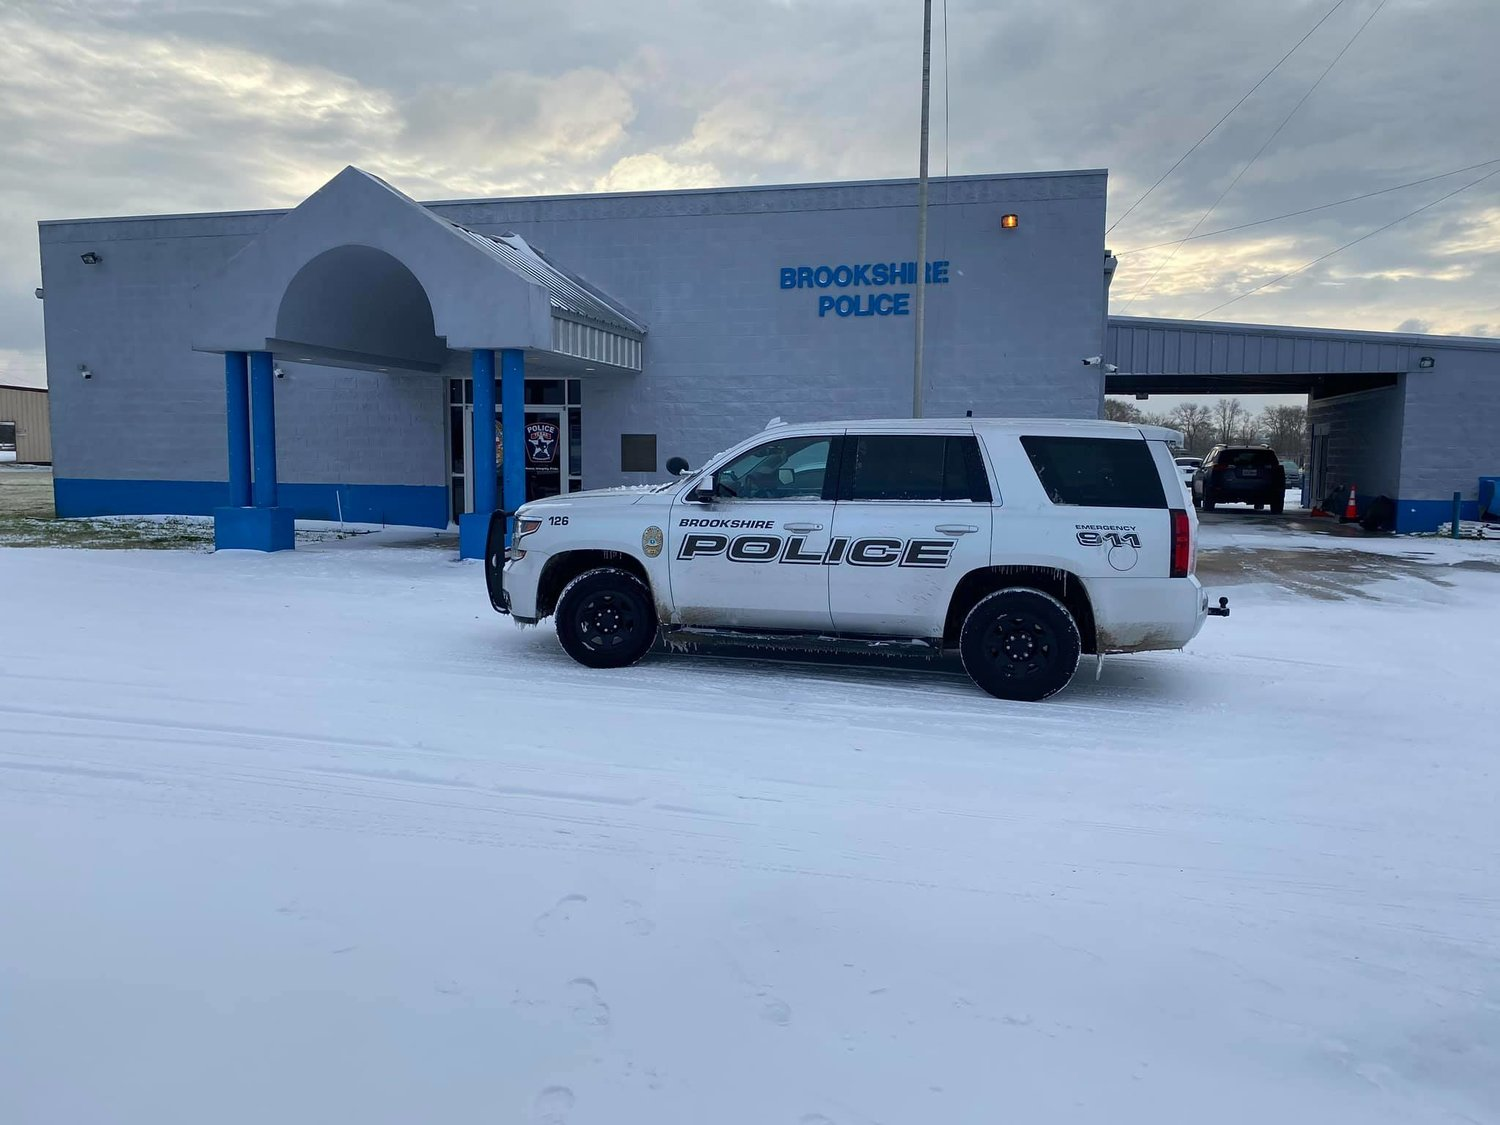 A Brookshire Police Department patrol vehicle sits outside of the Brookshire PD office Monday, Feb. 15. Much of the city's information regarding the storm was issued through the Brookshire PD Facebook page.